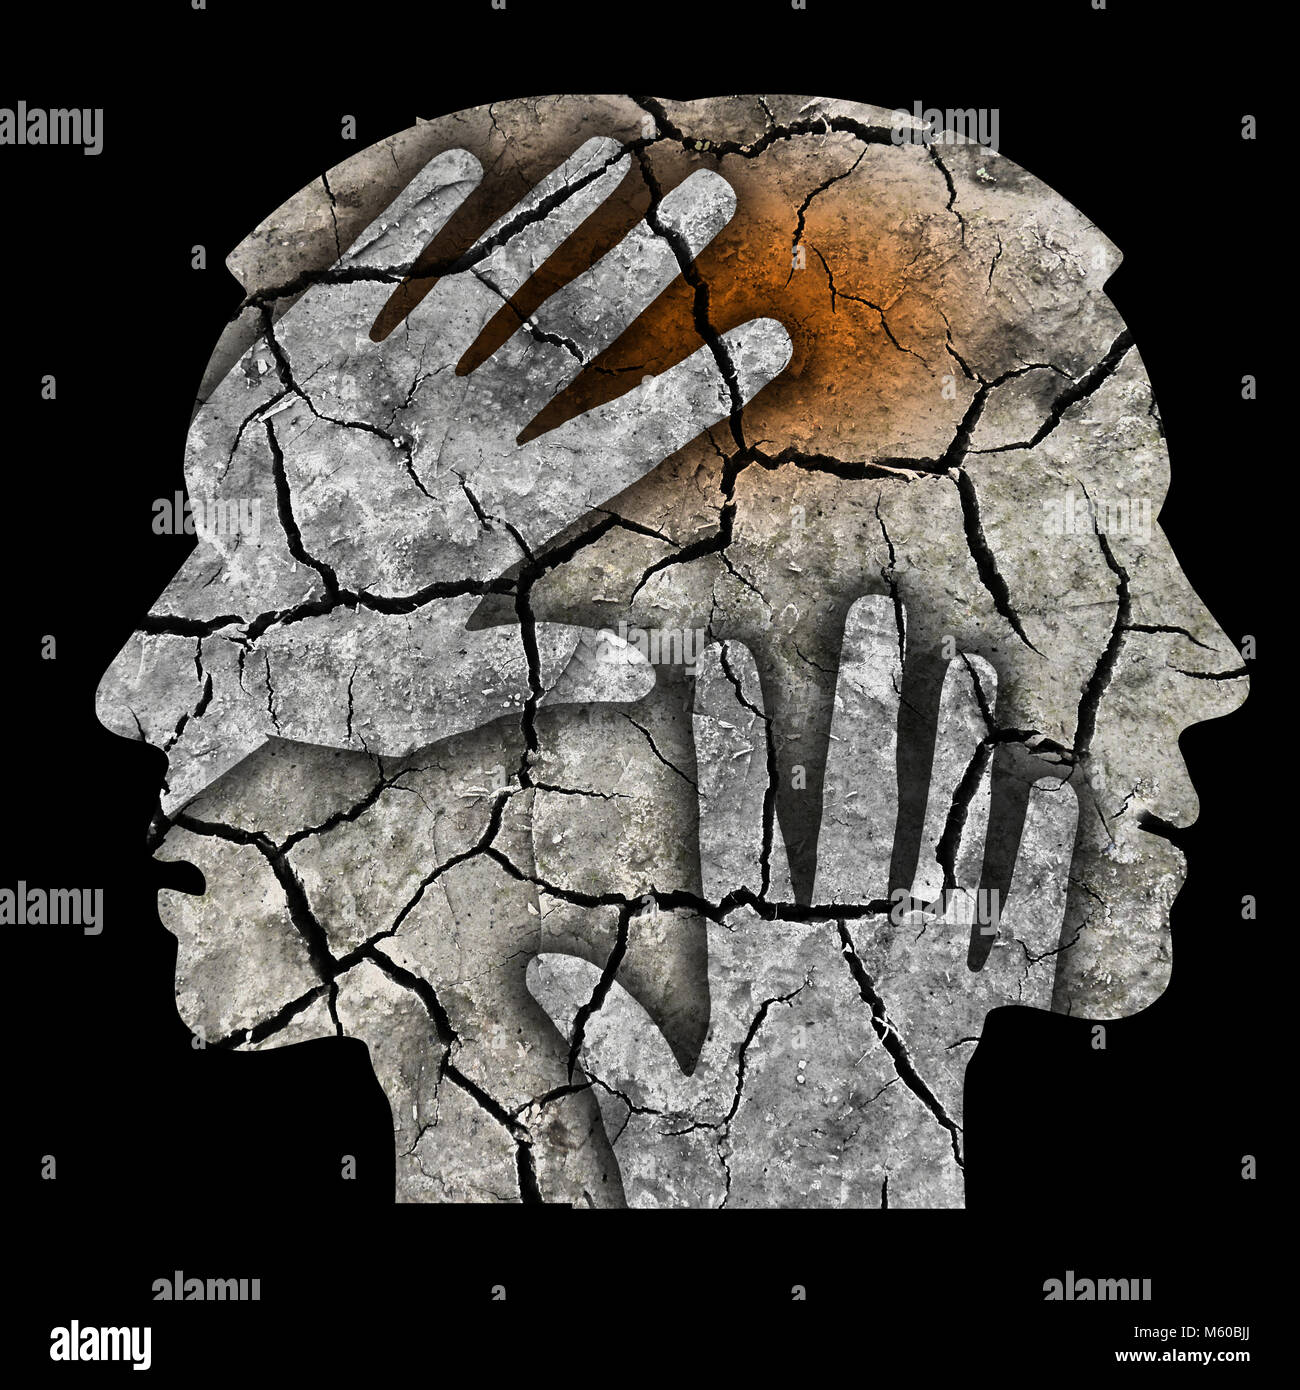 Schizophrenia male head silhouette. Man holding his head.Photo-montage with Dry cracked earth symbolizing schizophrenia - Stock Image